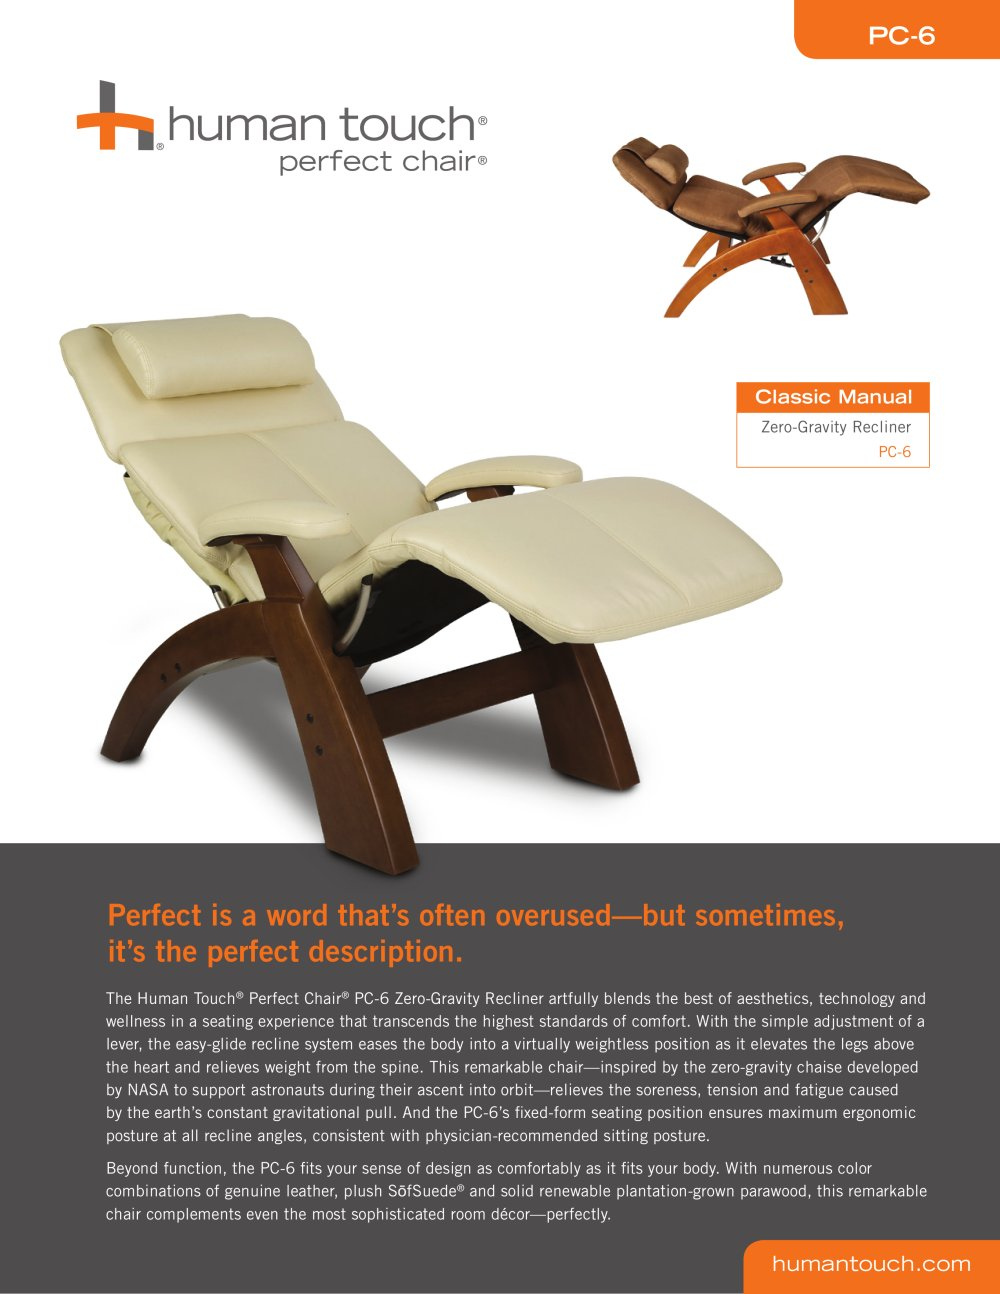 Perfect chair reclinerspc 6 perfect chair classic manual zero gravity 1 2 pages